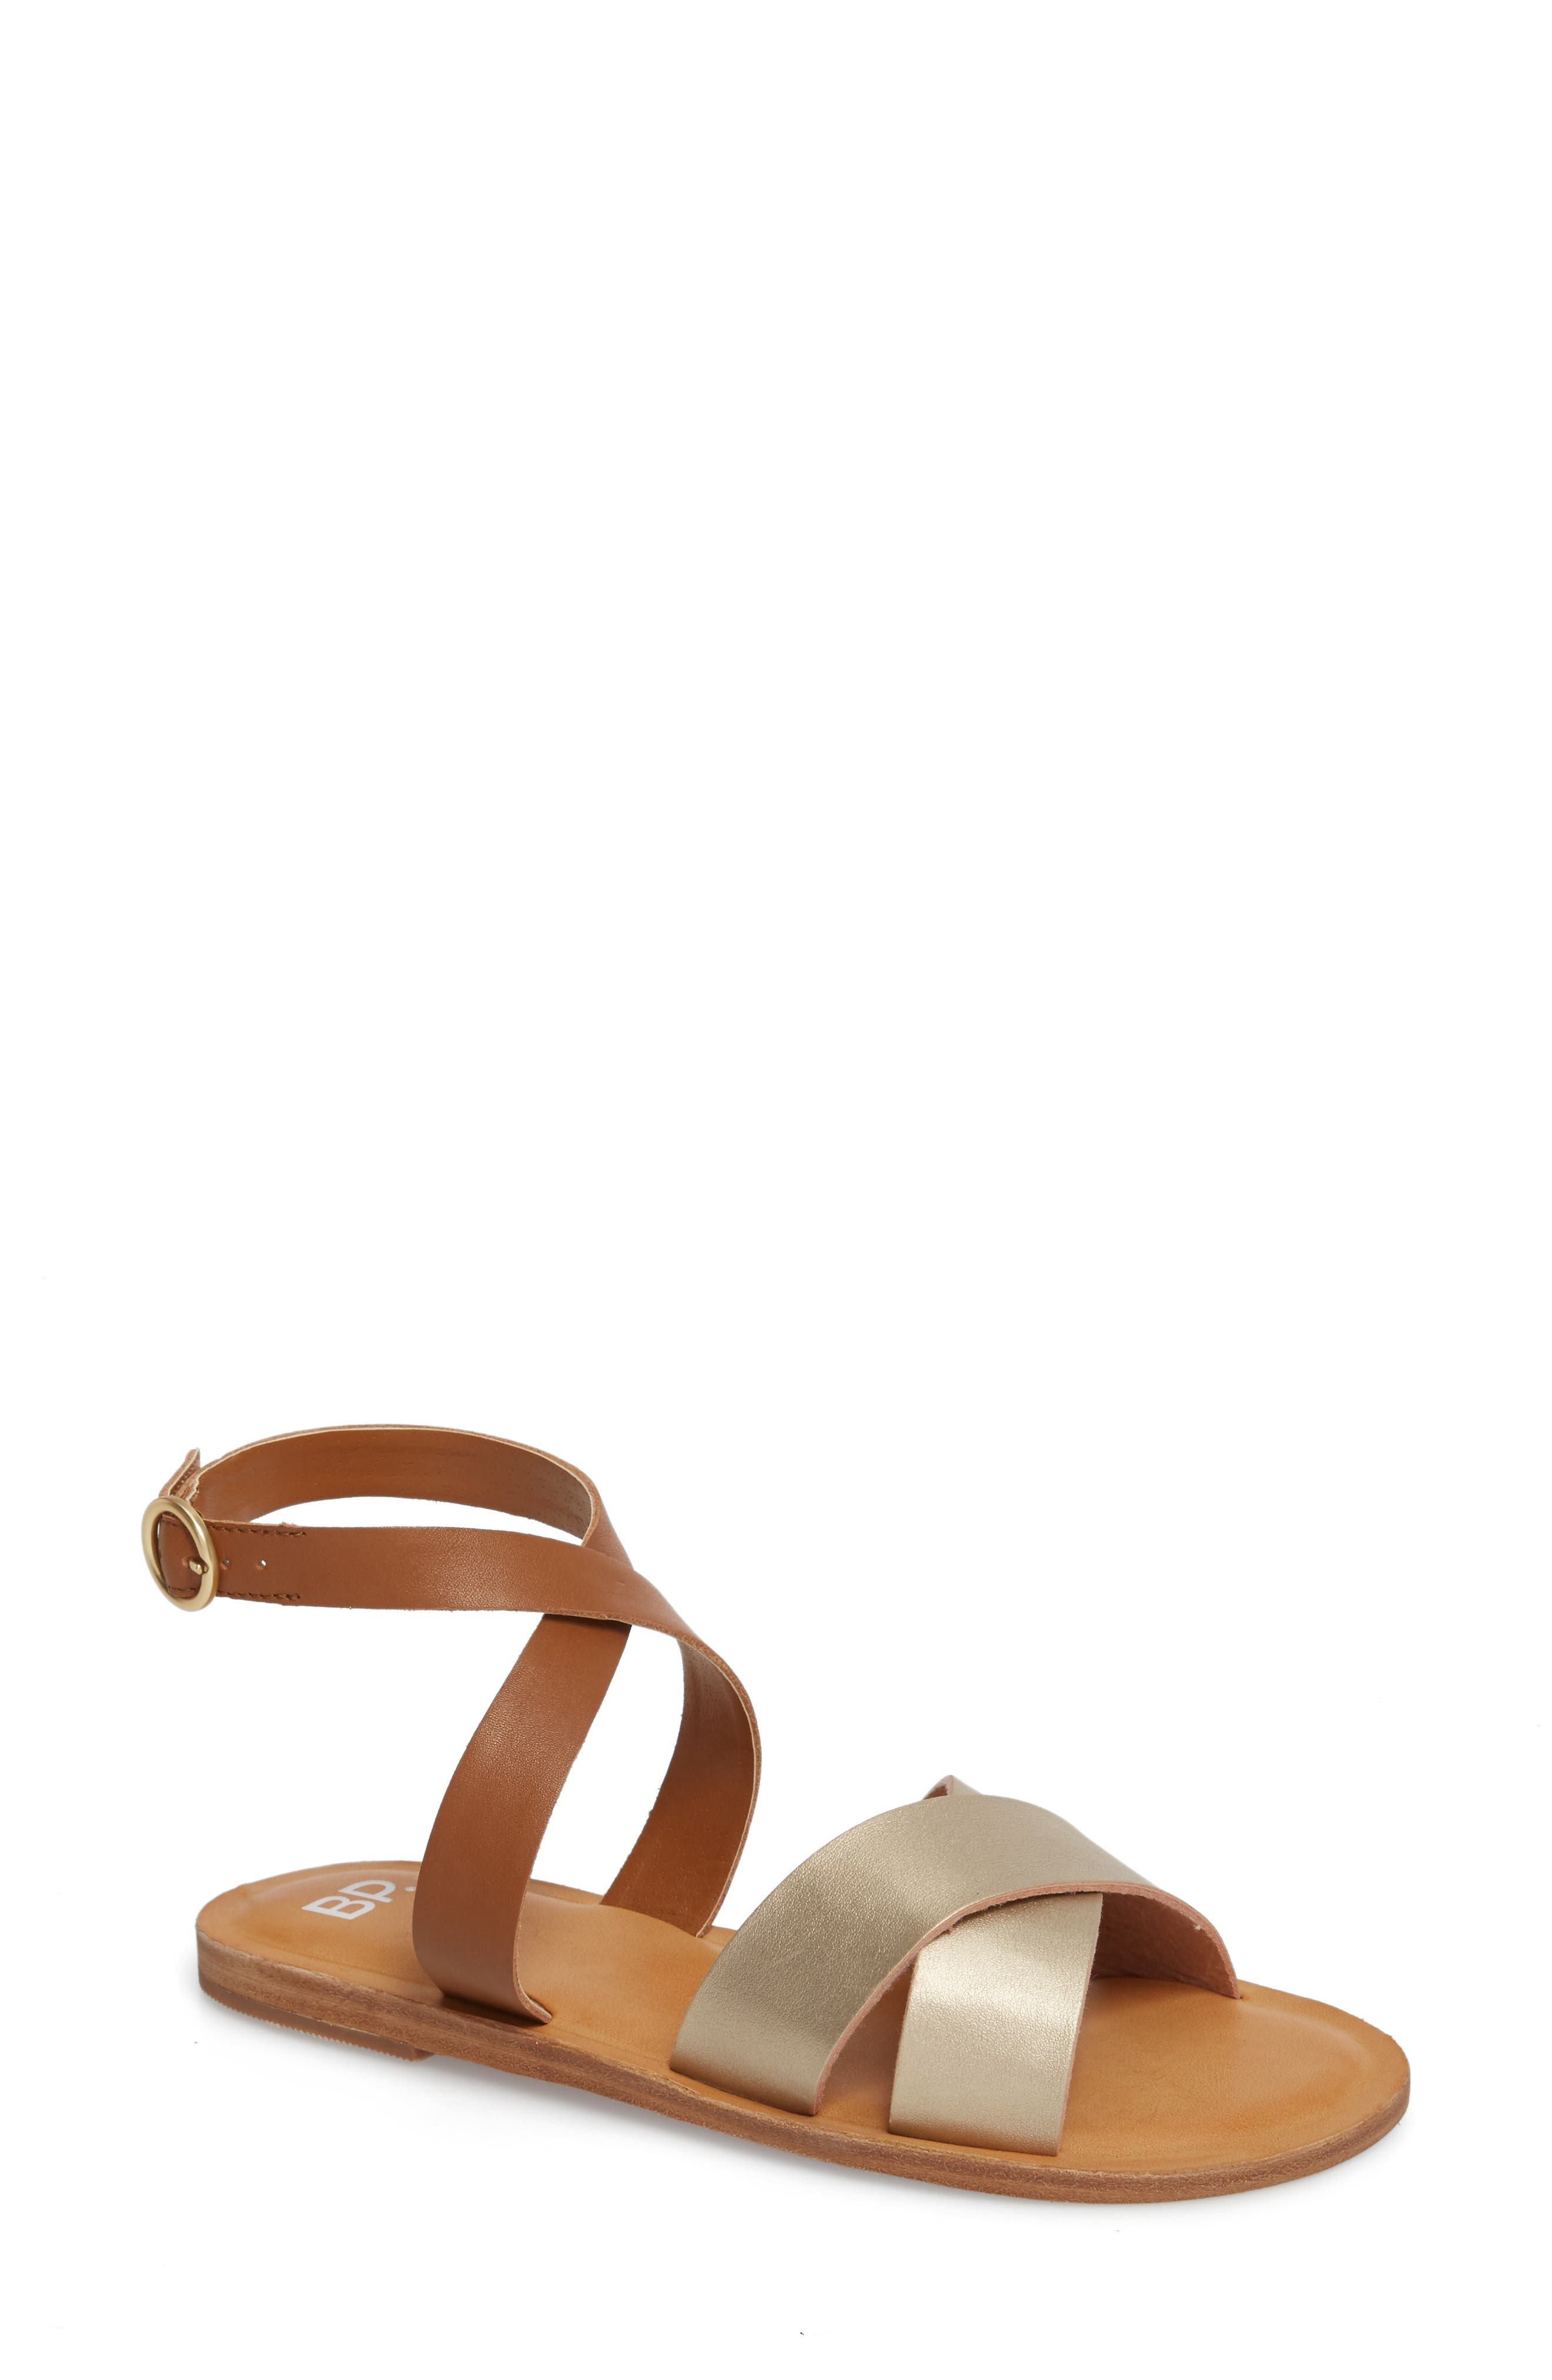 Reed Strappy Flat Sandal,                         Main,                         color, Gold/Cognac